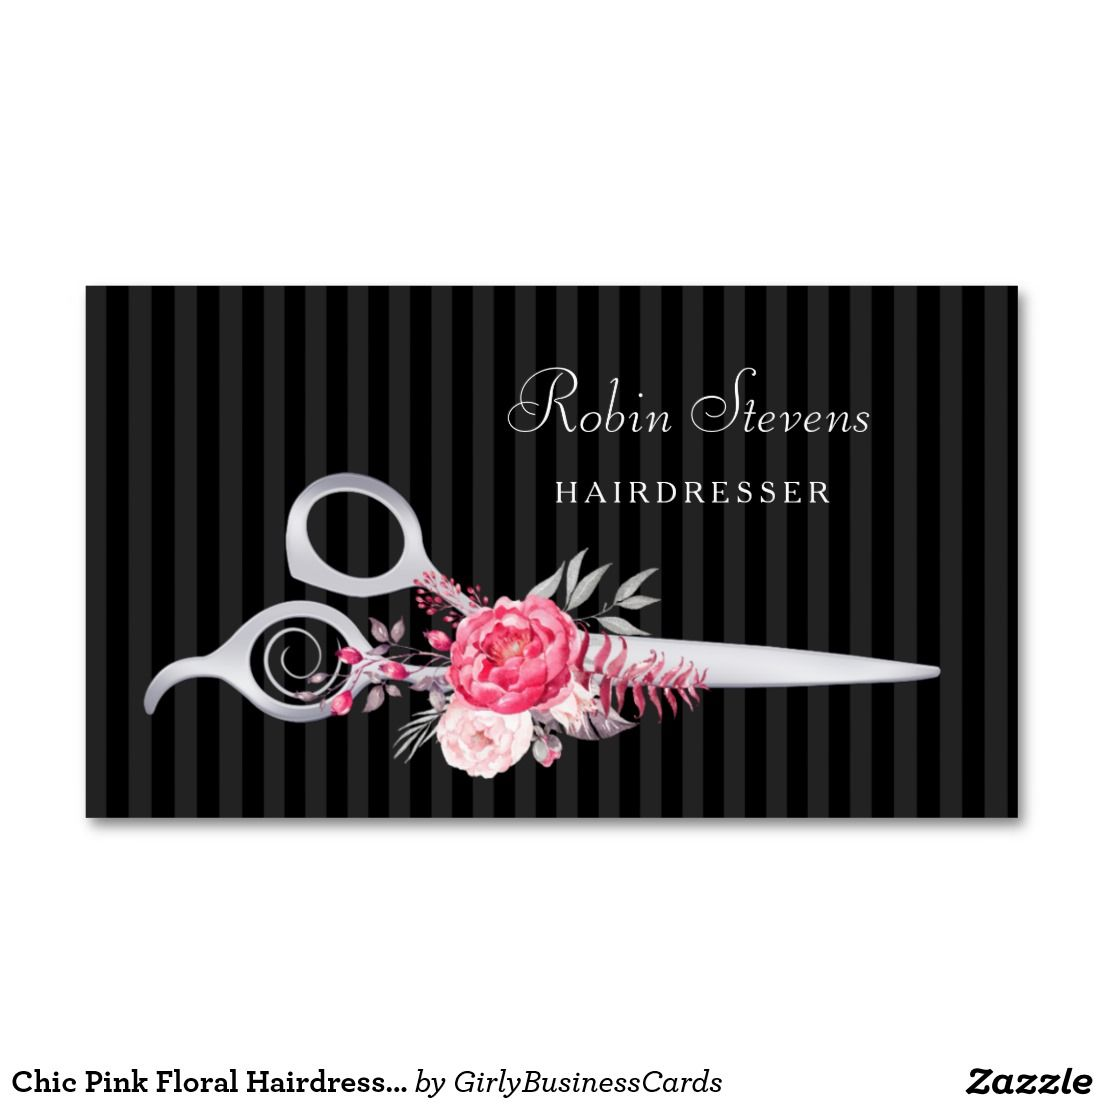 Chic Pink Floral Hairdresser Faux Silver Scissors Business Card ...